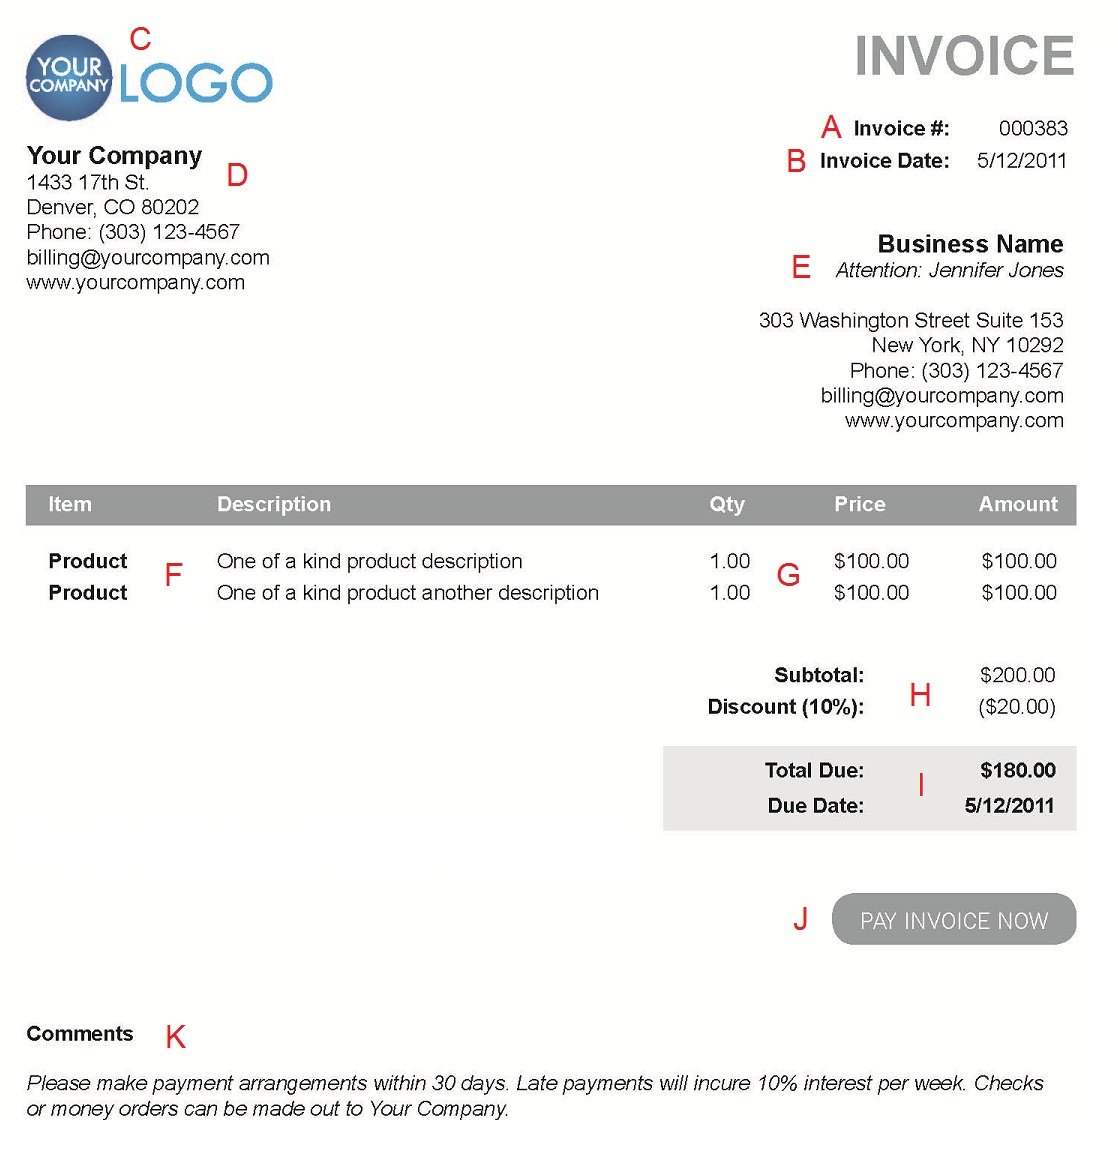 Imagerackus  Splendid The  Different Sections Of An Electronic Payment Invoice With Goodlooking A  With Comely To Invoice Also Ford F  Invoice In Addition Paper Invoice And How To Write An Invoice Letter As Well As Generate Invoice Online Additionally Business Invoices Online From Paysimplecom With Imagerackus  Goodlooking The  Different Sections Of An Electronic Payment Invoice With Comely A  And Splendid To Invoice Also Ford F  Invoice In Addition Paper Invoice From Paysimplecom